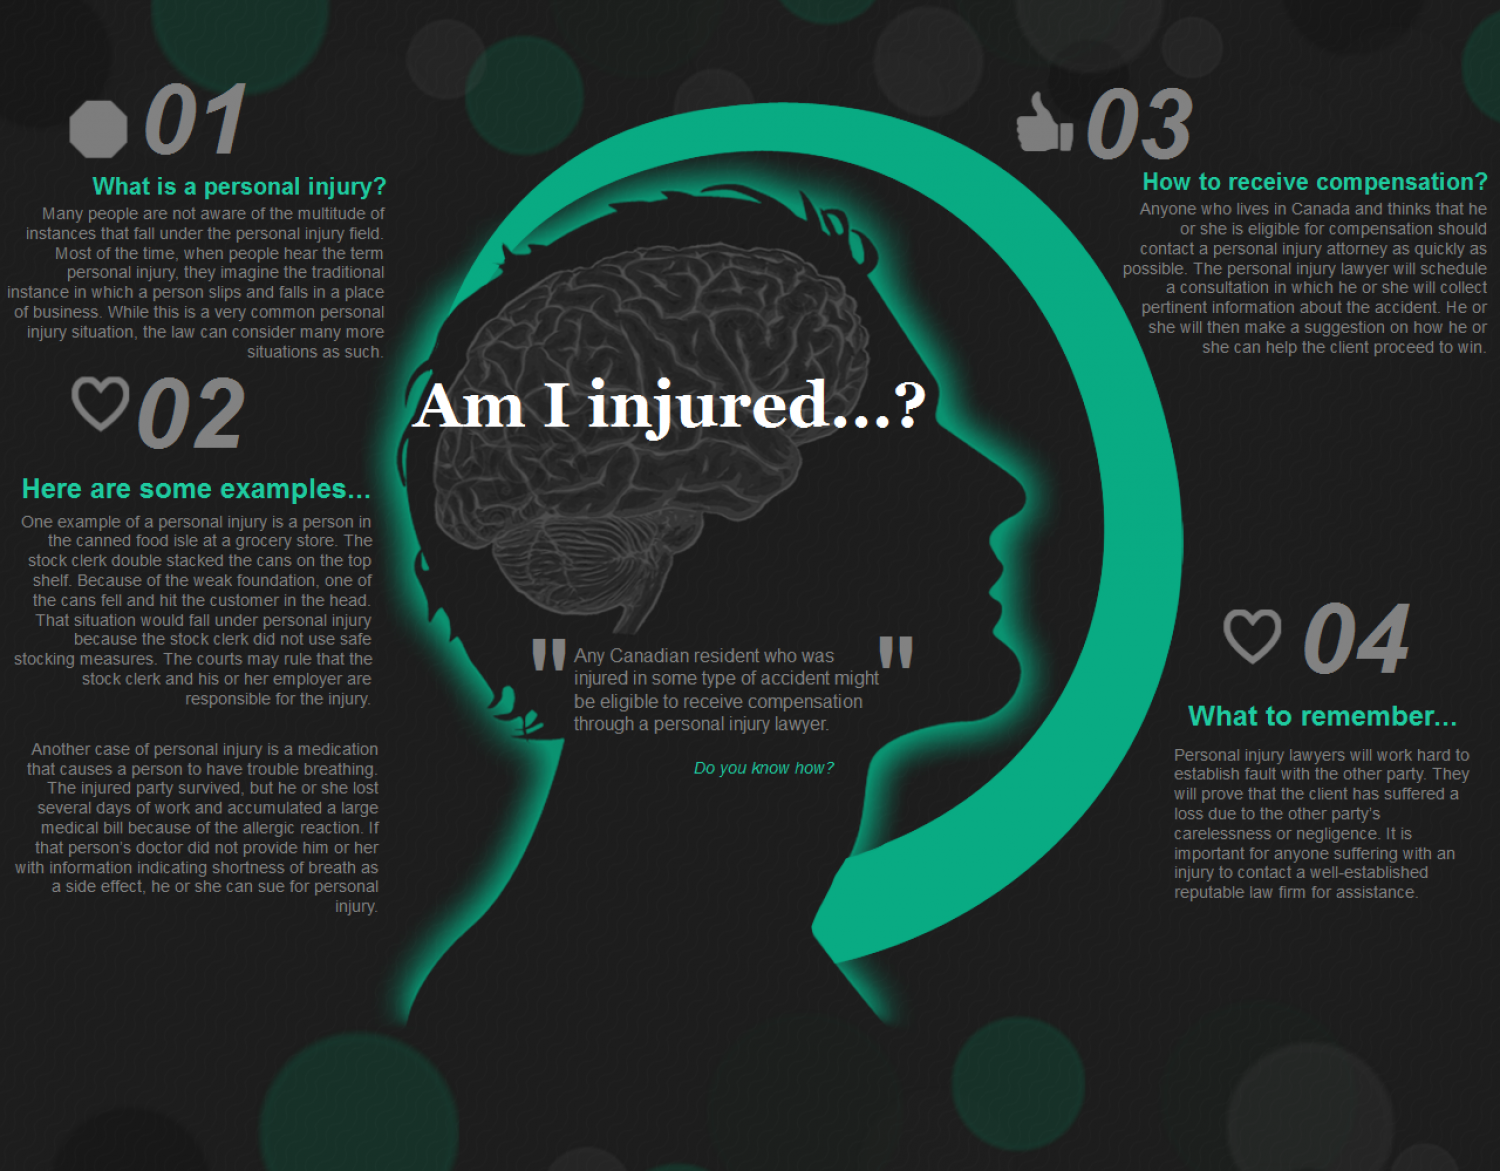 Understanding Personal Injury - When do you need a lawyer? Infographic